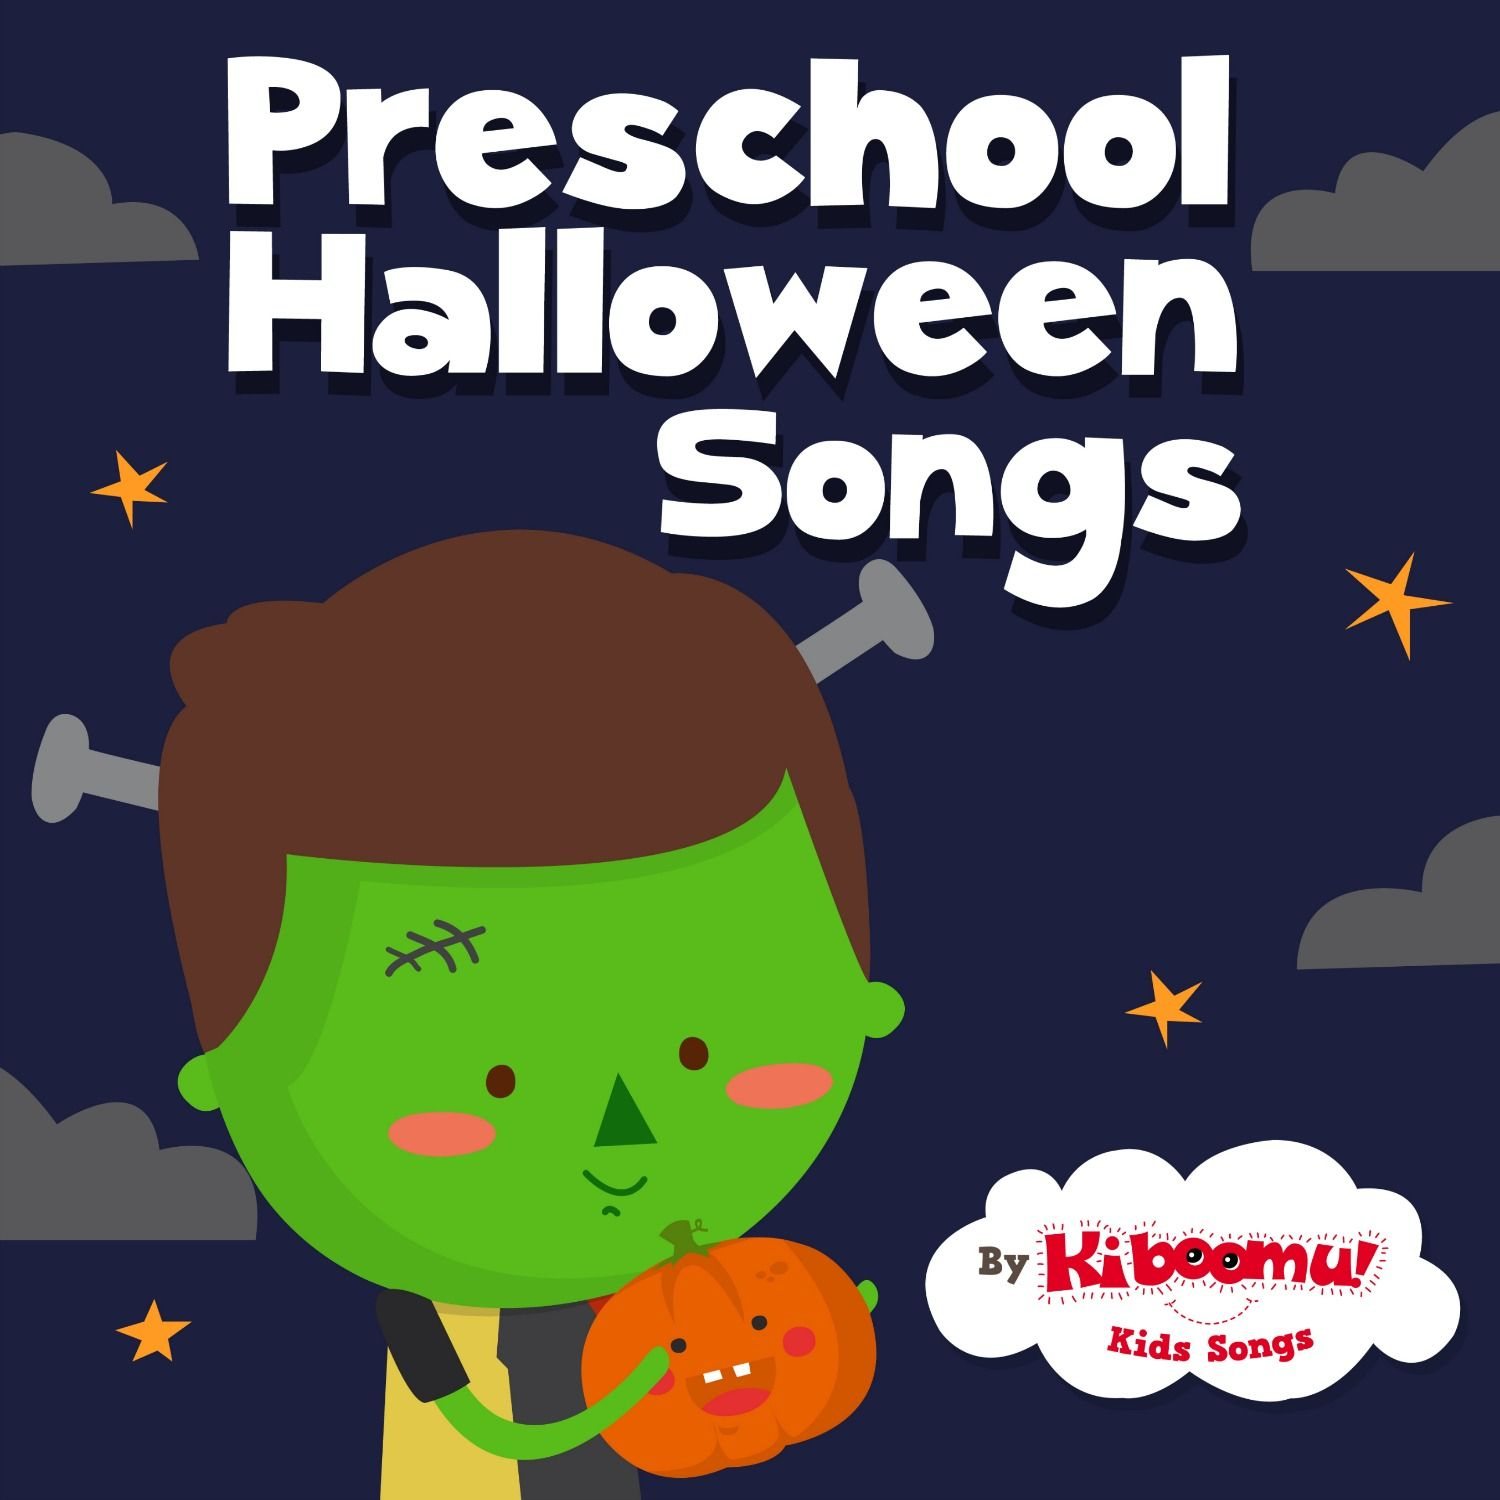 Preschool Halloween Songs